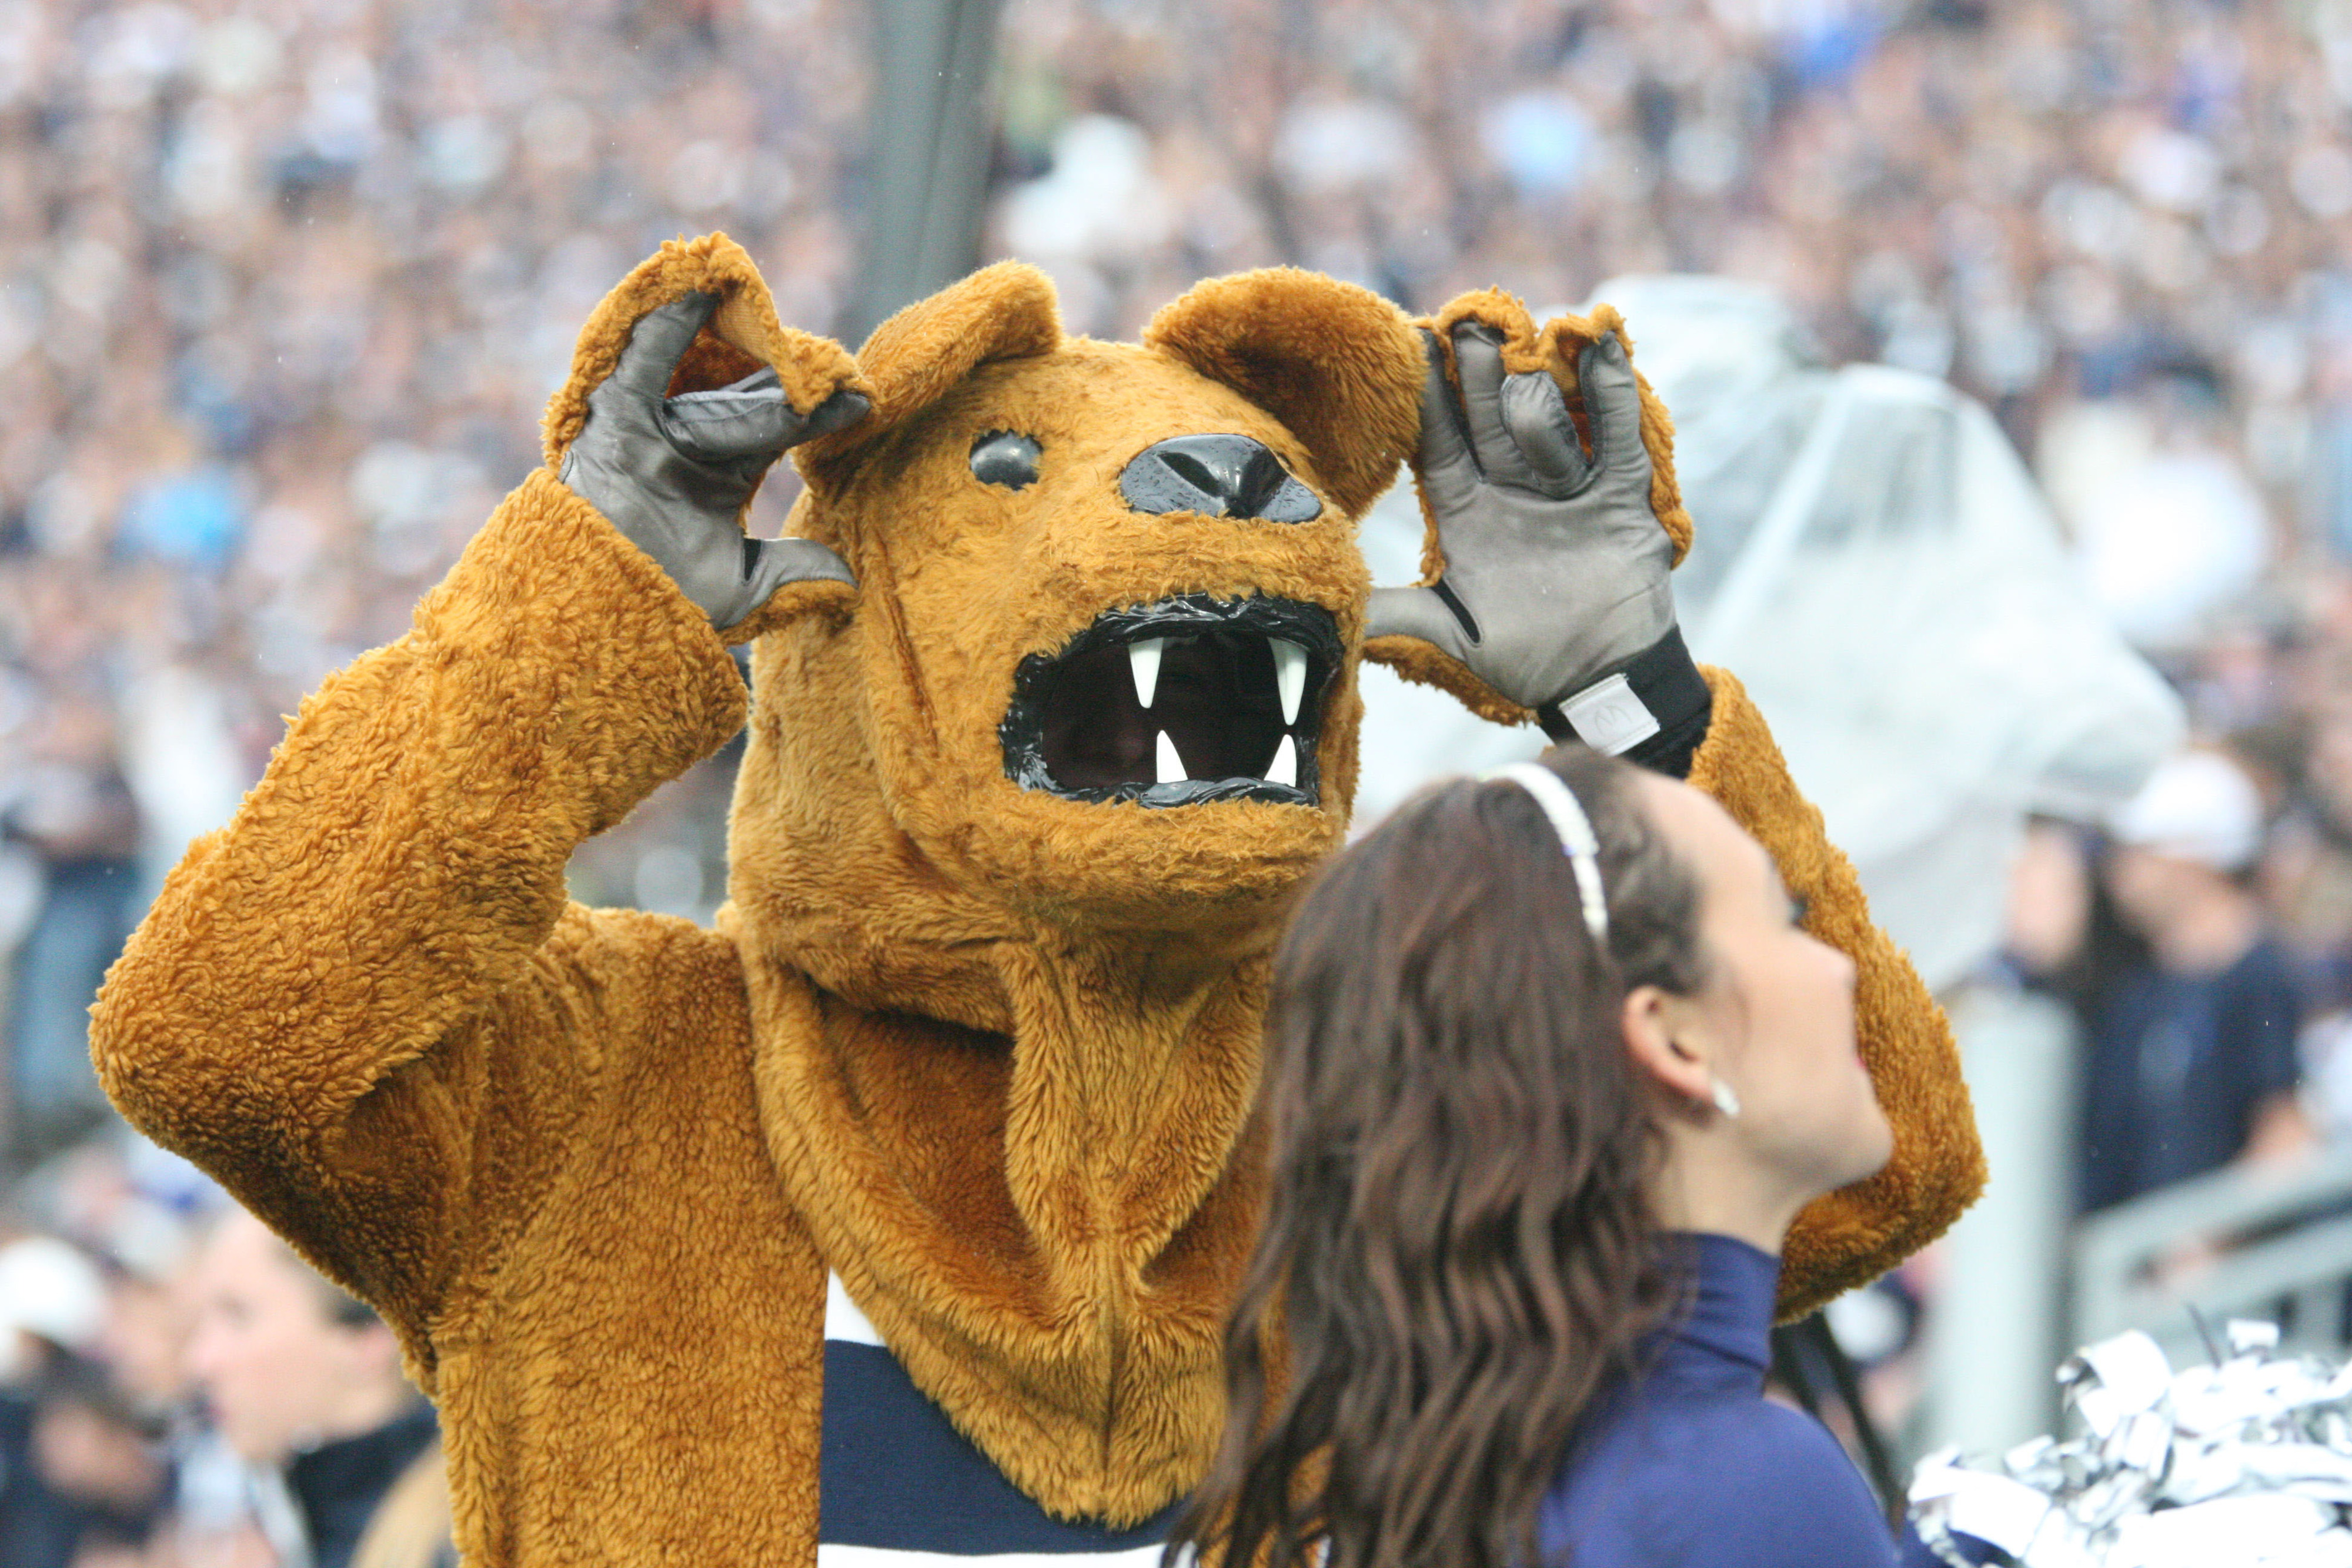 That poor, unsuspecting cheerleader is about to be eaten by the Nittany Lion.